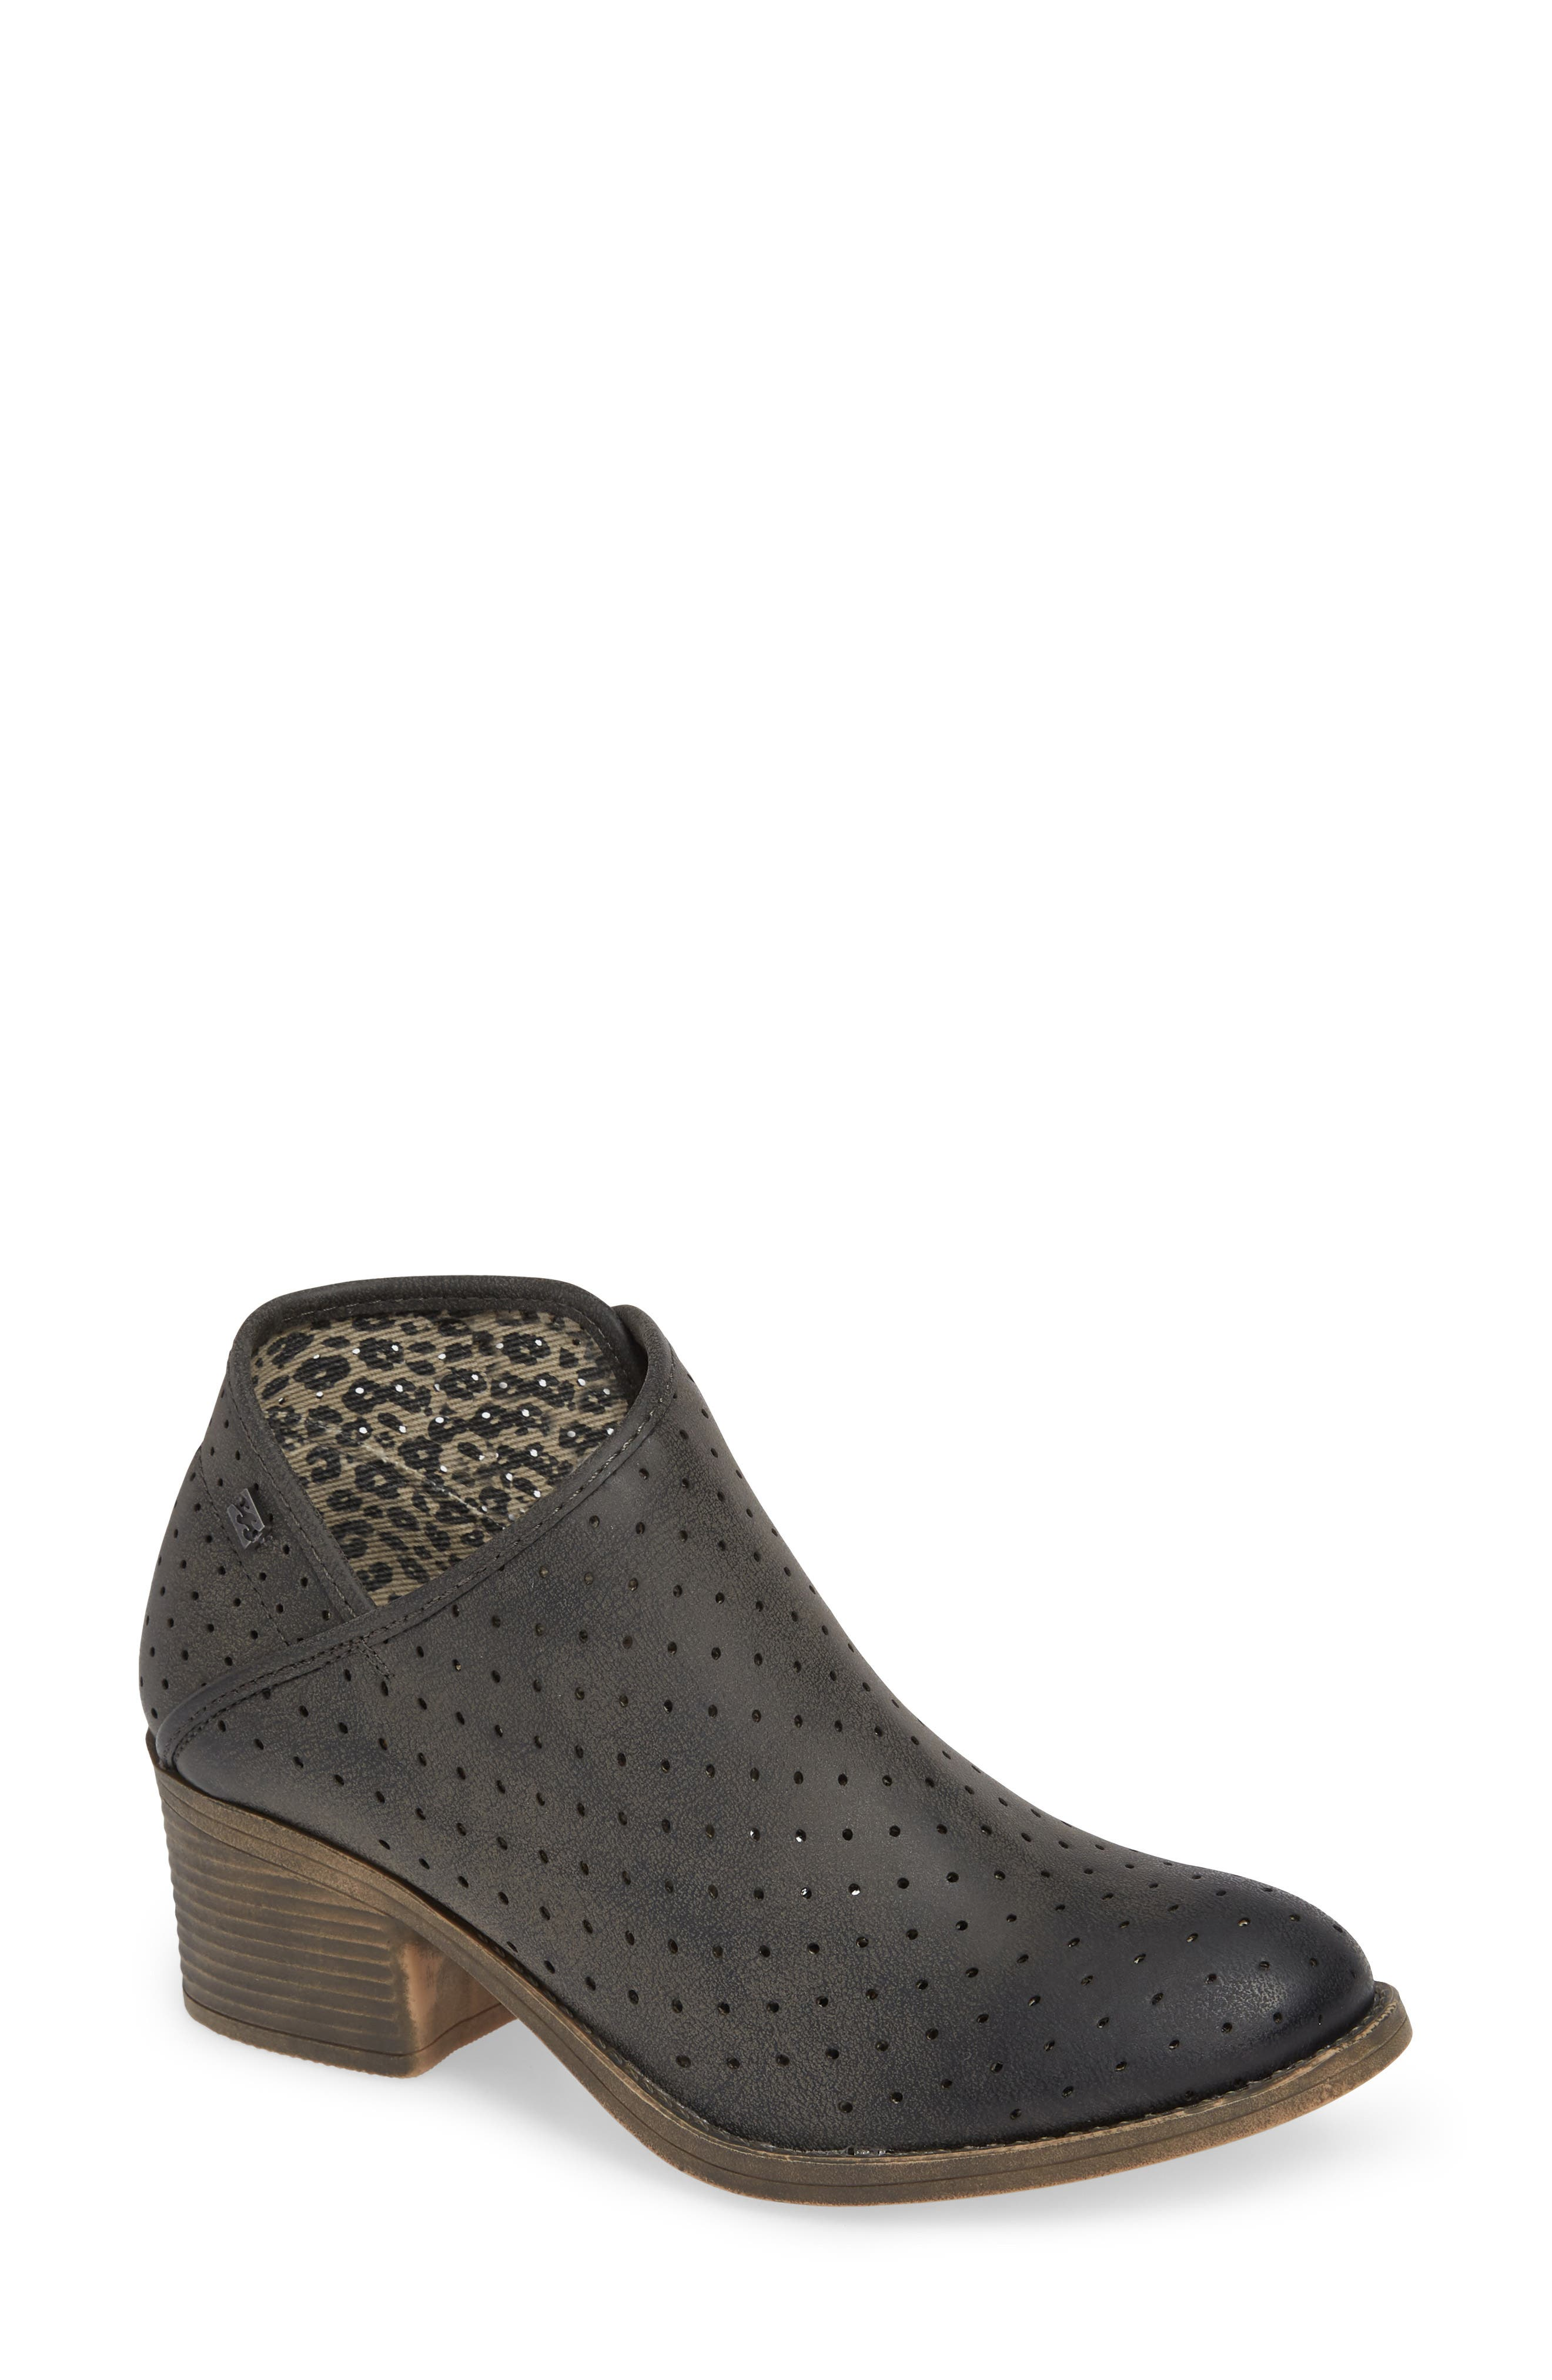 Sunbeams Perforated Bootie,                             Main thumbnail 1, color,                             025